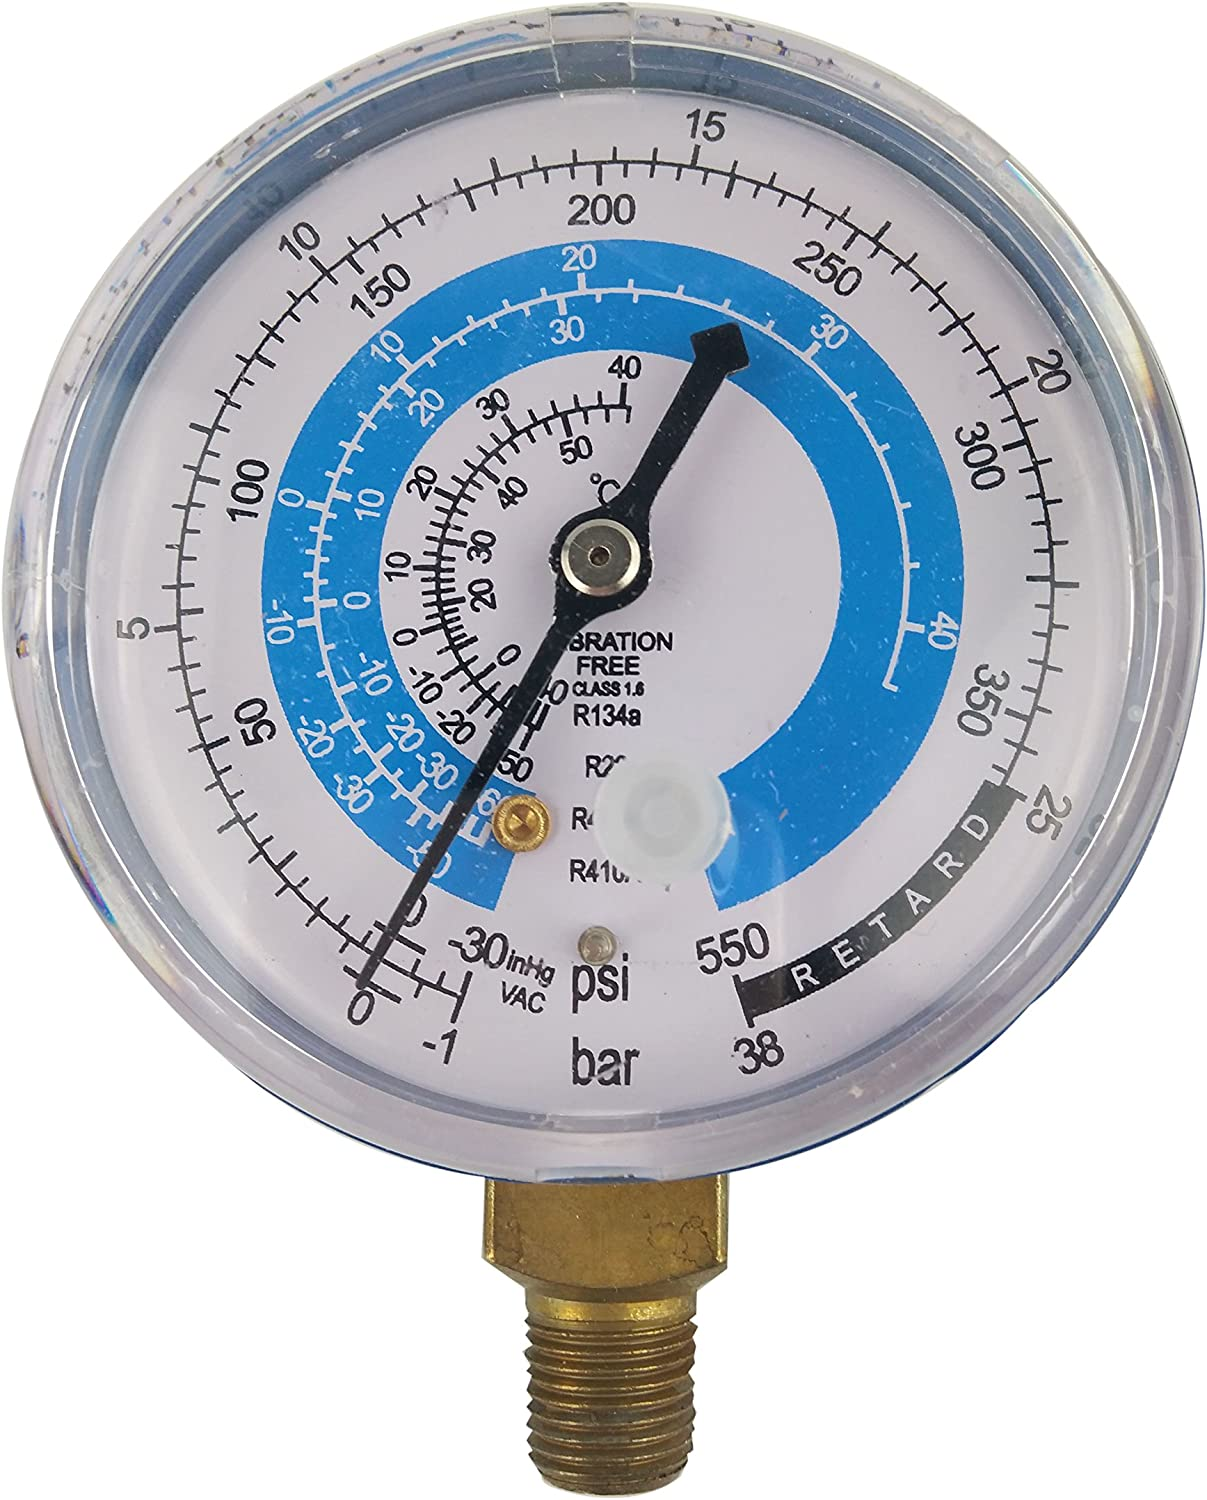 Wisepick Refrigerant Low and High Pressure Gauges for Air Conditioner R410A R404A R134A R22